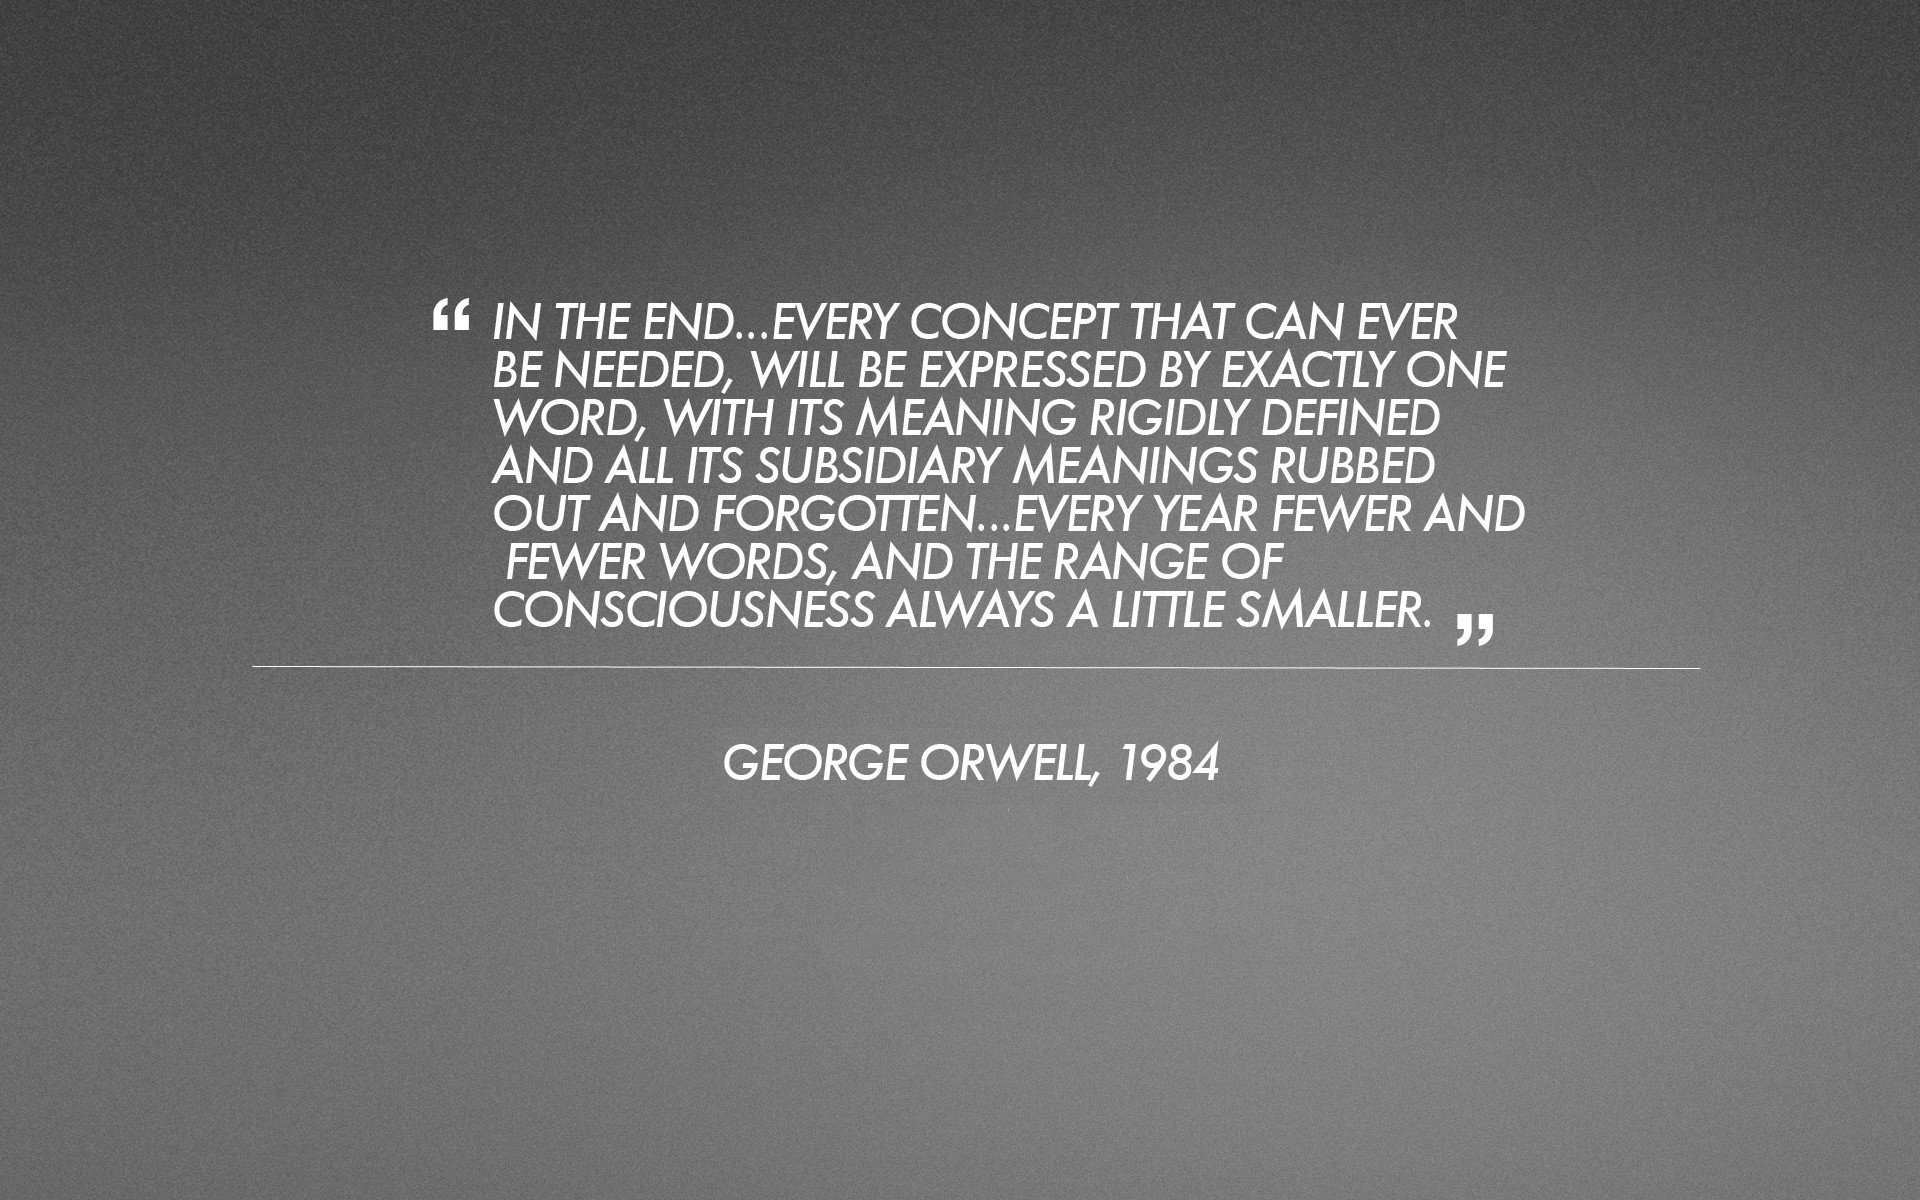 is george orwell s 1984 becoming a The a vocabulary consisted of the words needed for the business of everyday life — for such things as eating, drinking, working, putting on one's clothes, going up and down stairs, riding in vehicles, gardening, cooking, and the like.